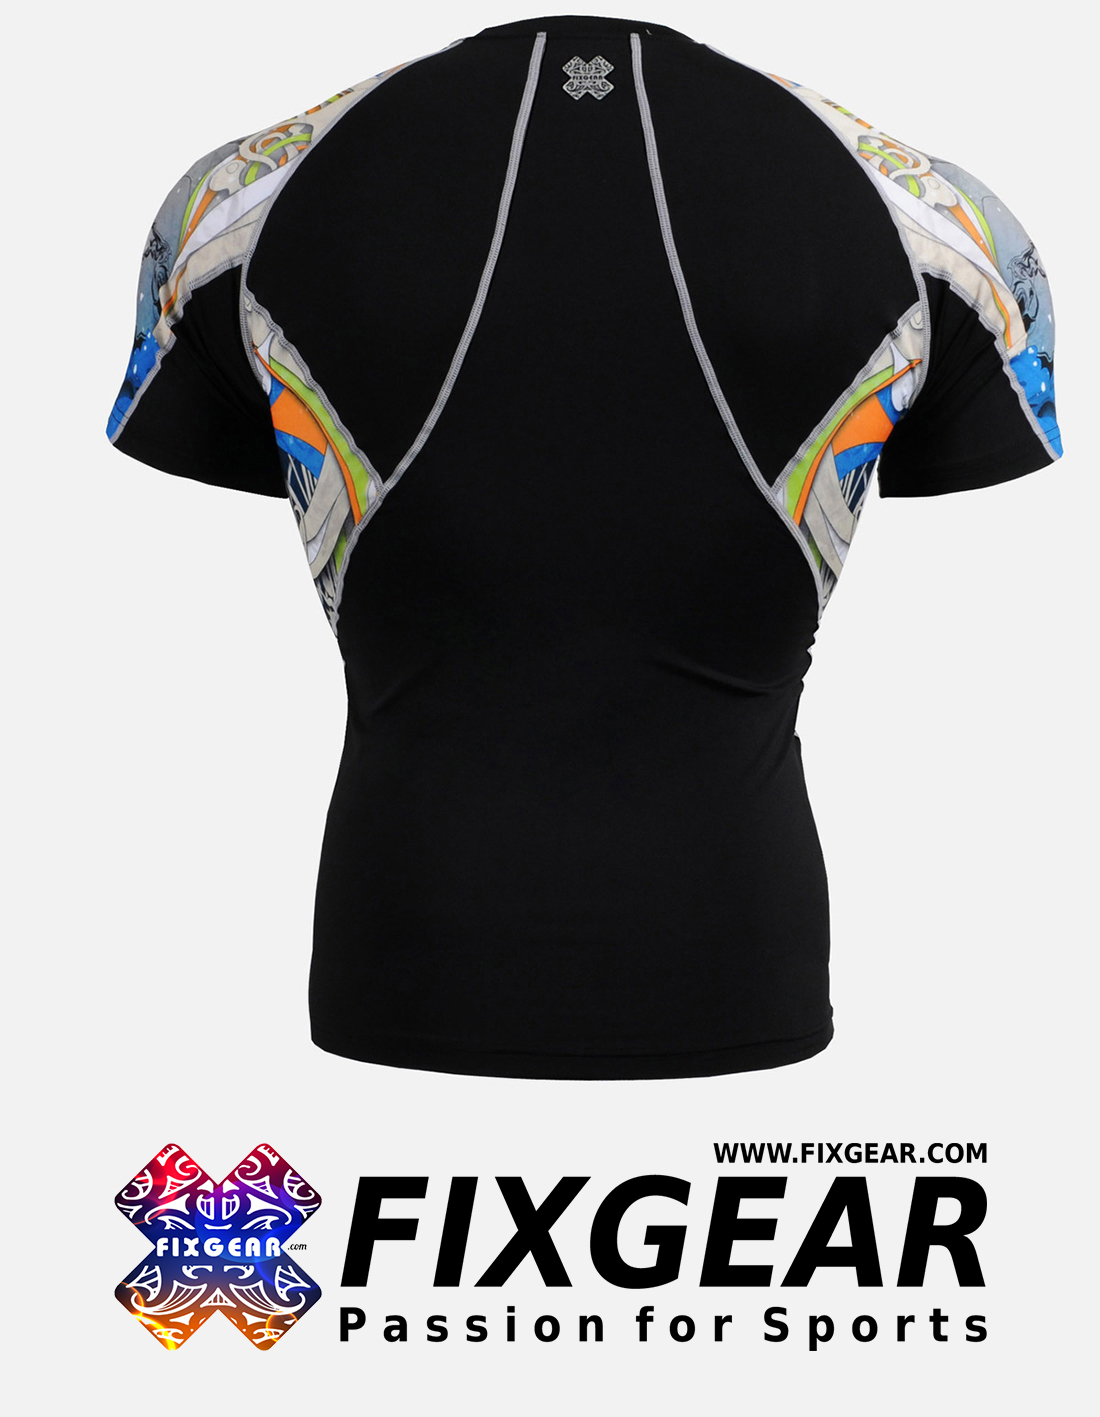 FIXGEAR C2S-B19B Compression Base Layer Shirt Short Sleeve